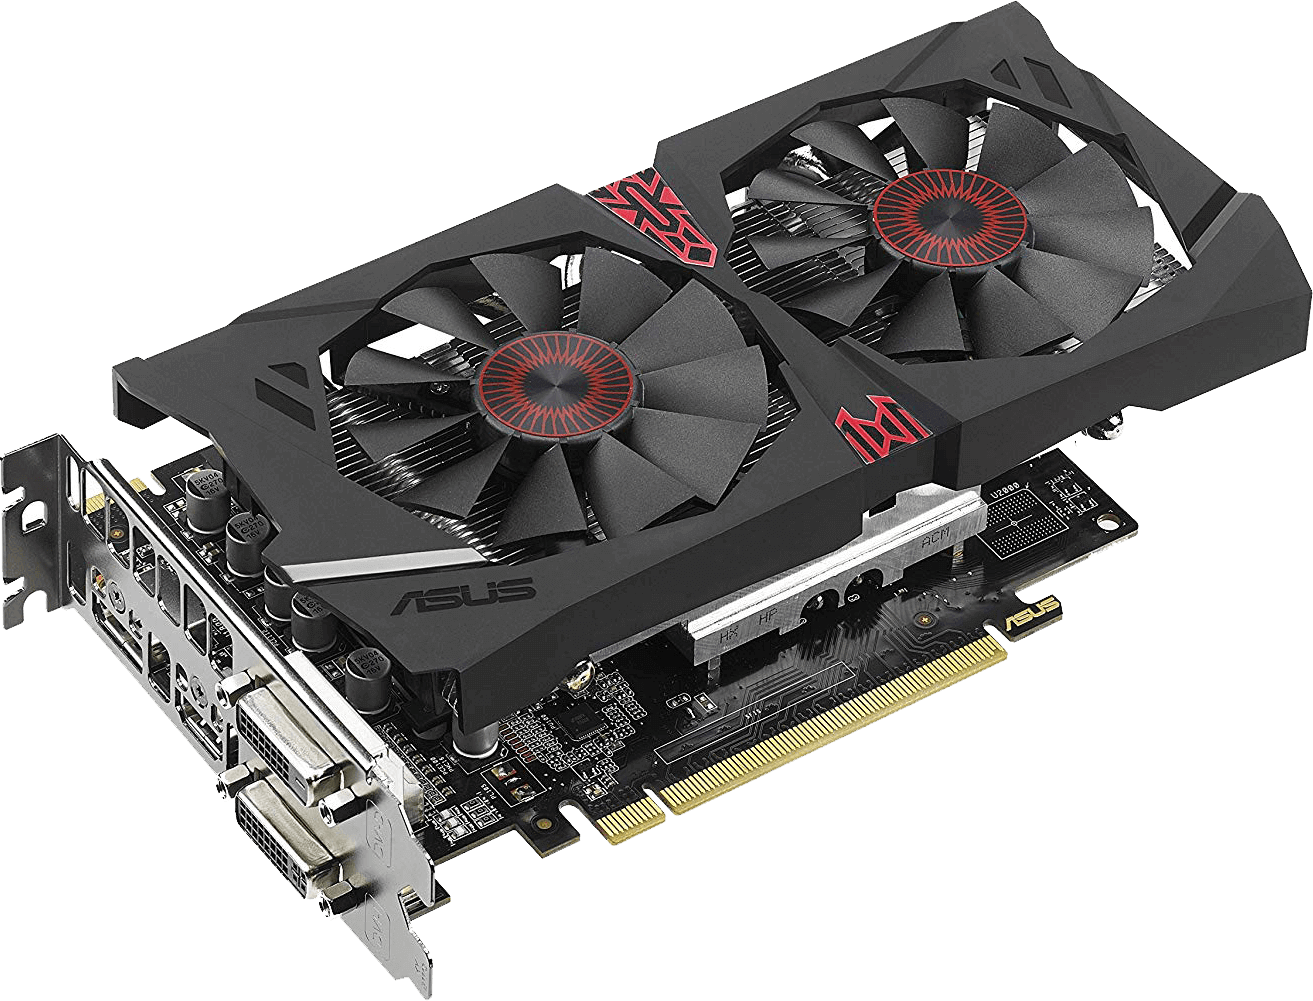 Asus Strix Radeon R7 370 Review - Best Graphics Card under 200